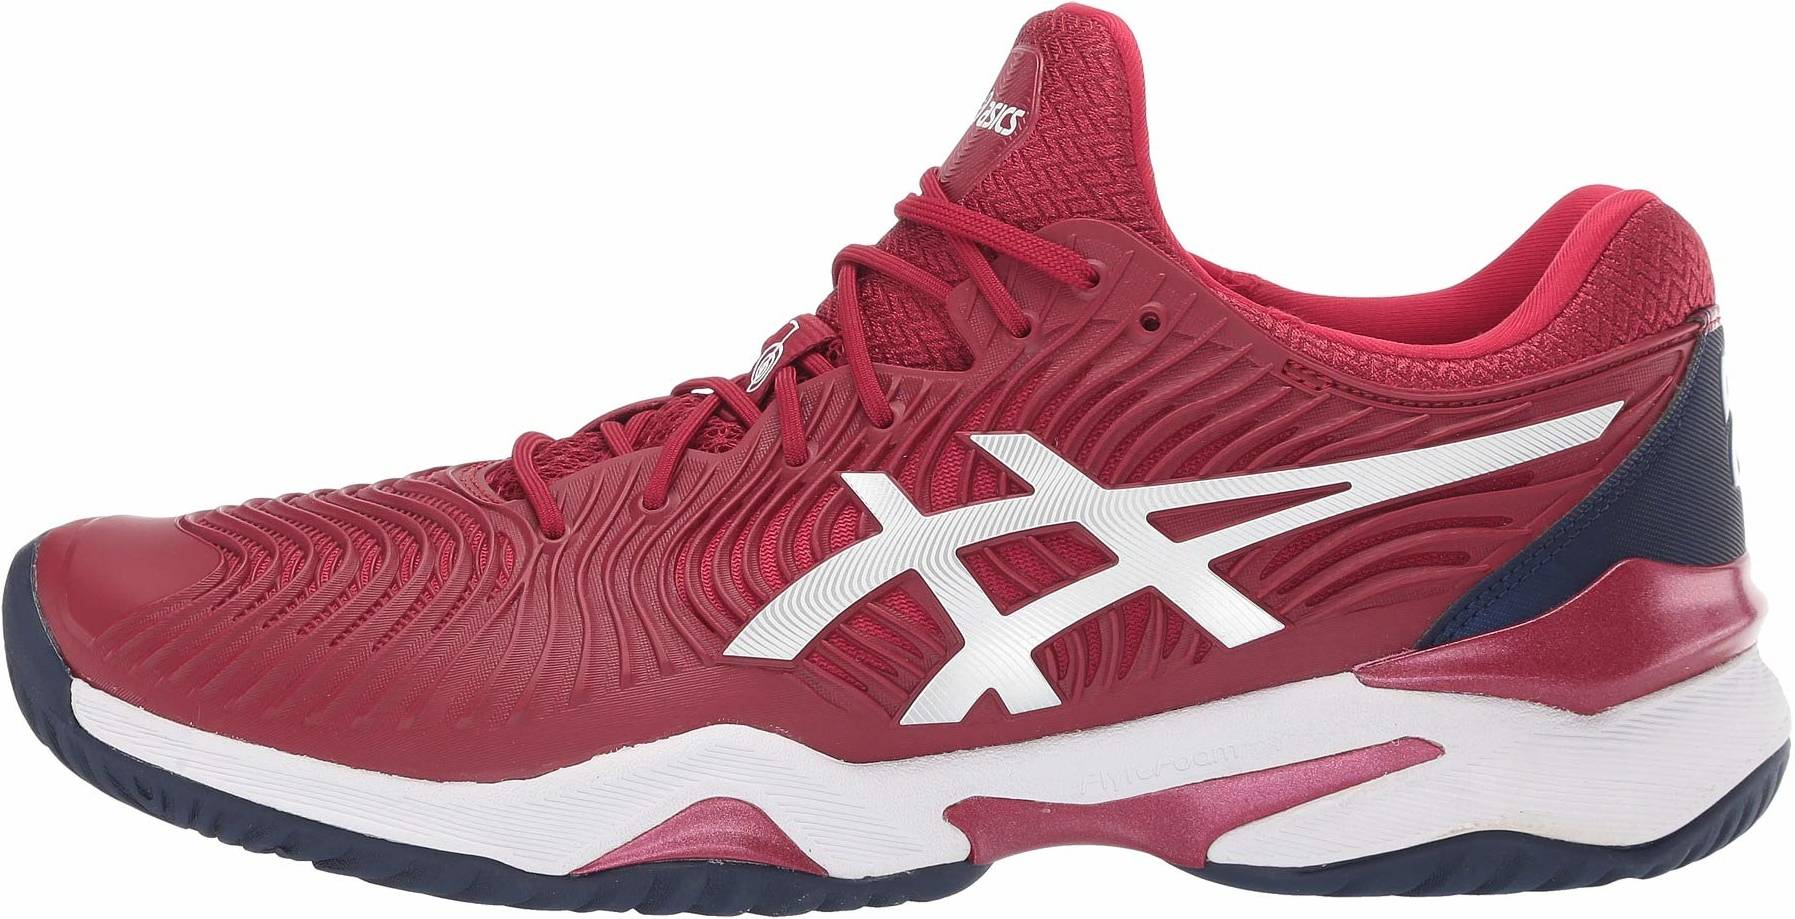 Save 49% on Tennis Shoes (106 Models in